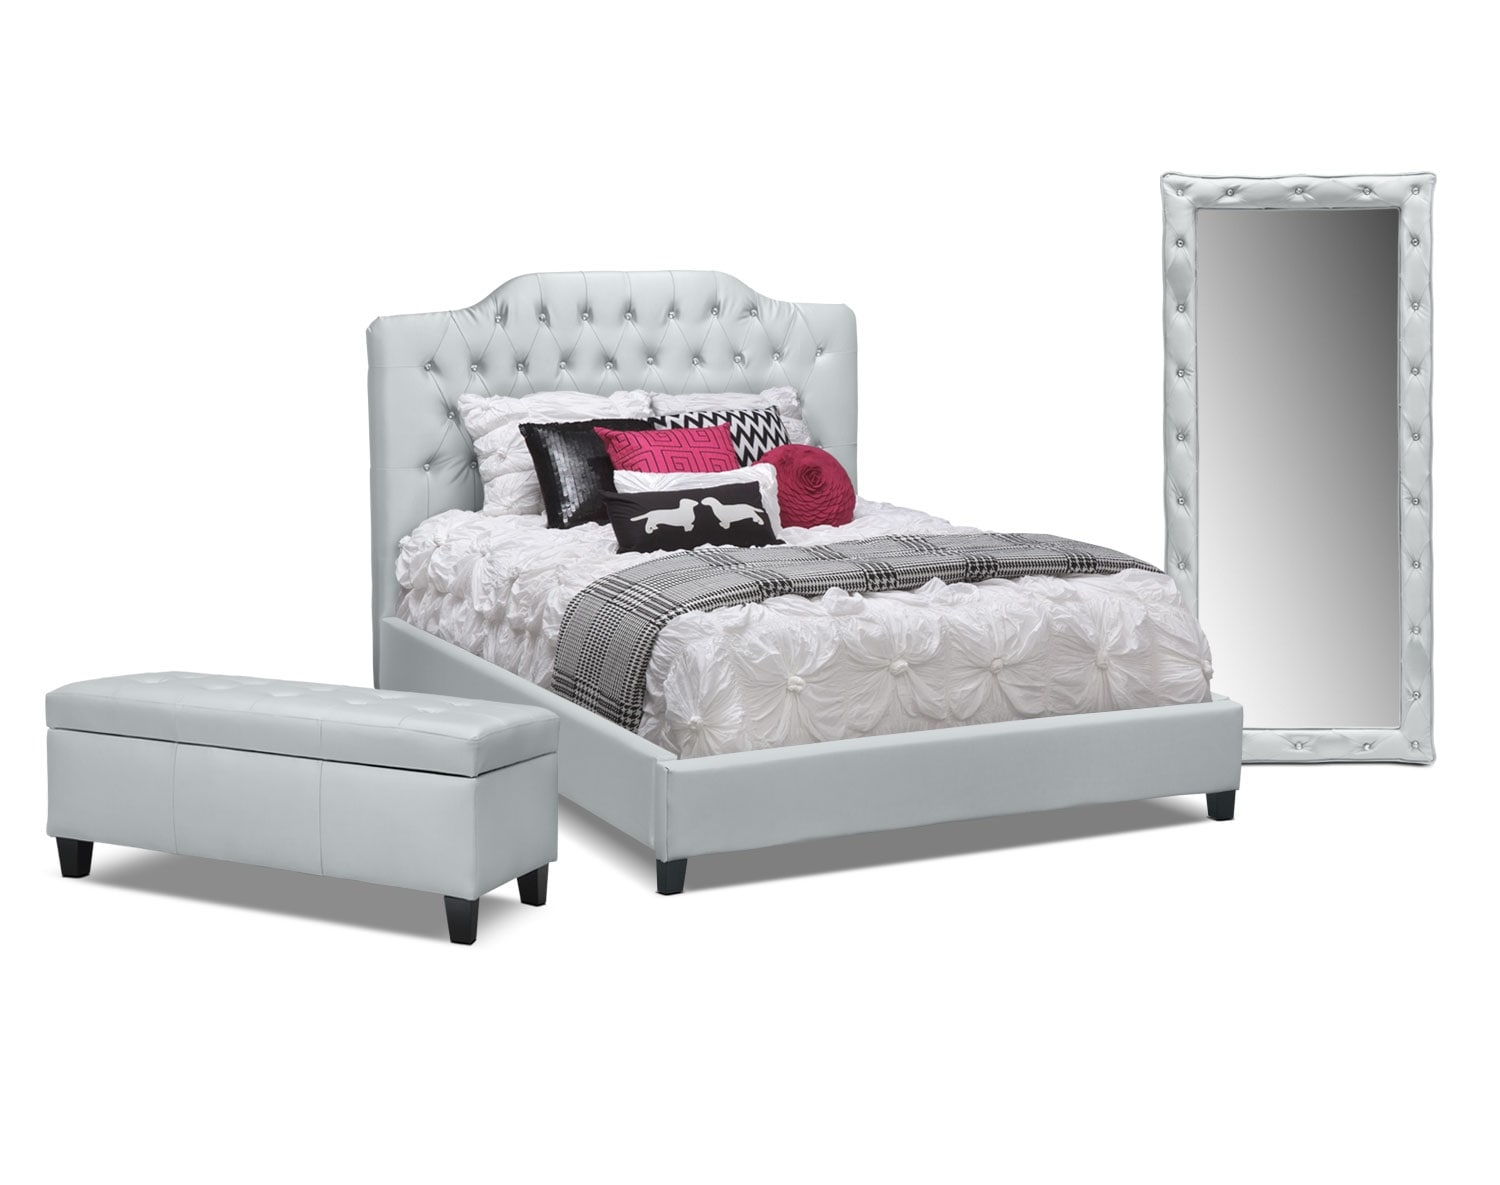 The Valerie Collection Silver Value City Furniture and Mattresses